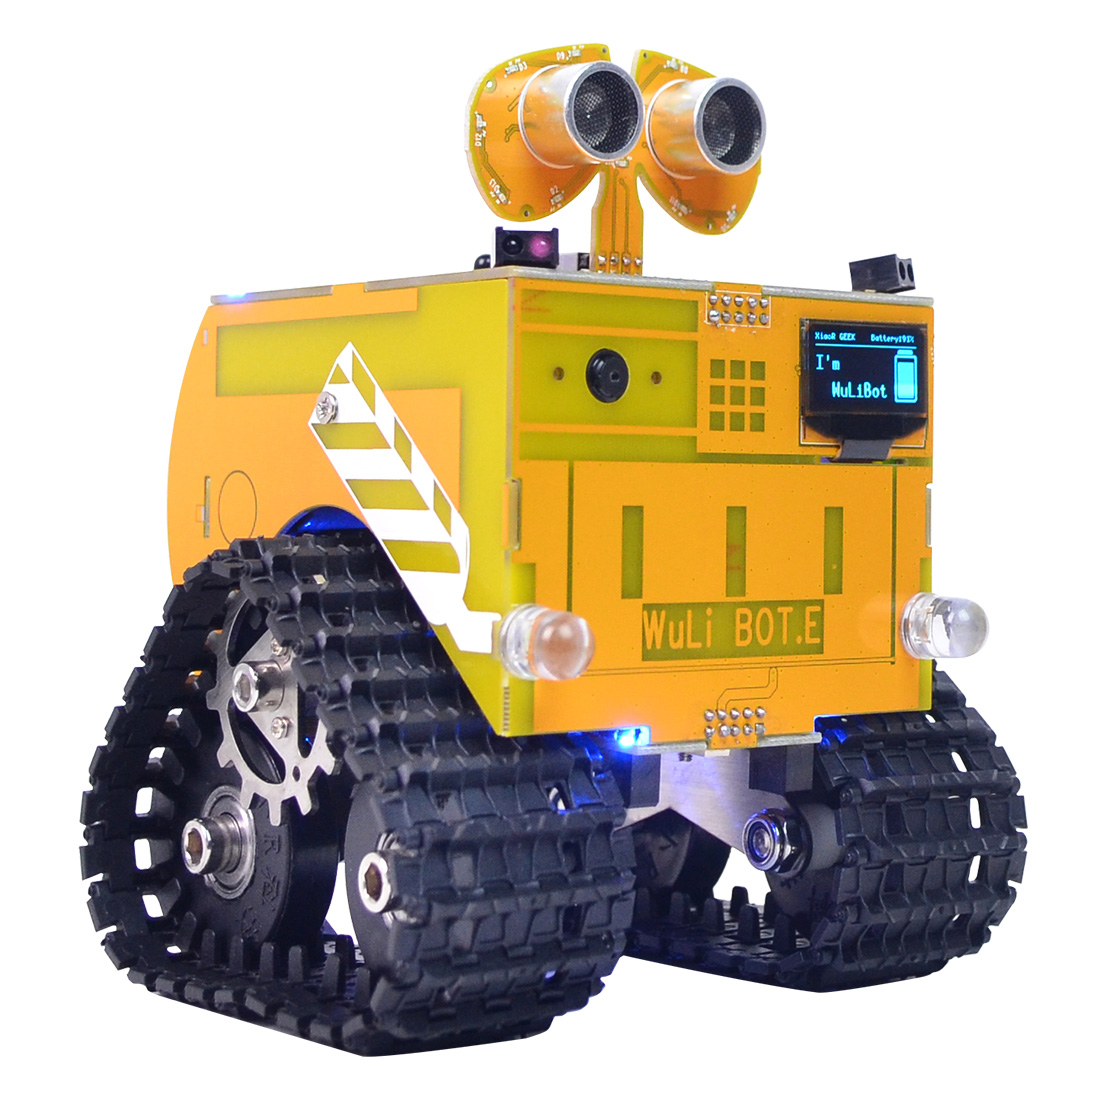 Modiker High Tech Robot RC Programming Track Car Steam Educational Toys Without Camera Programmable Toys